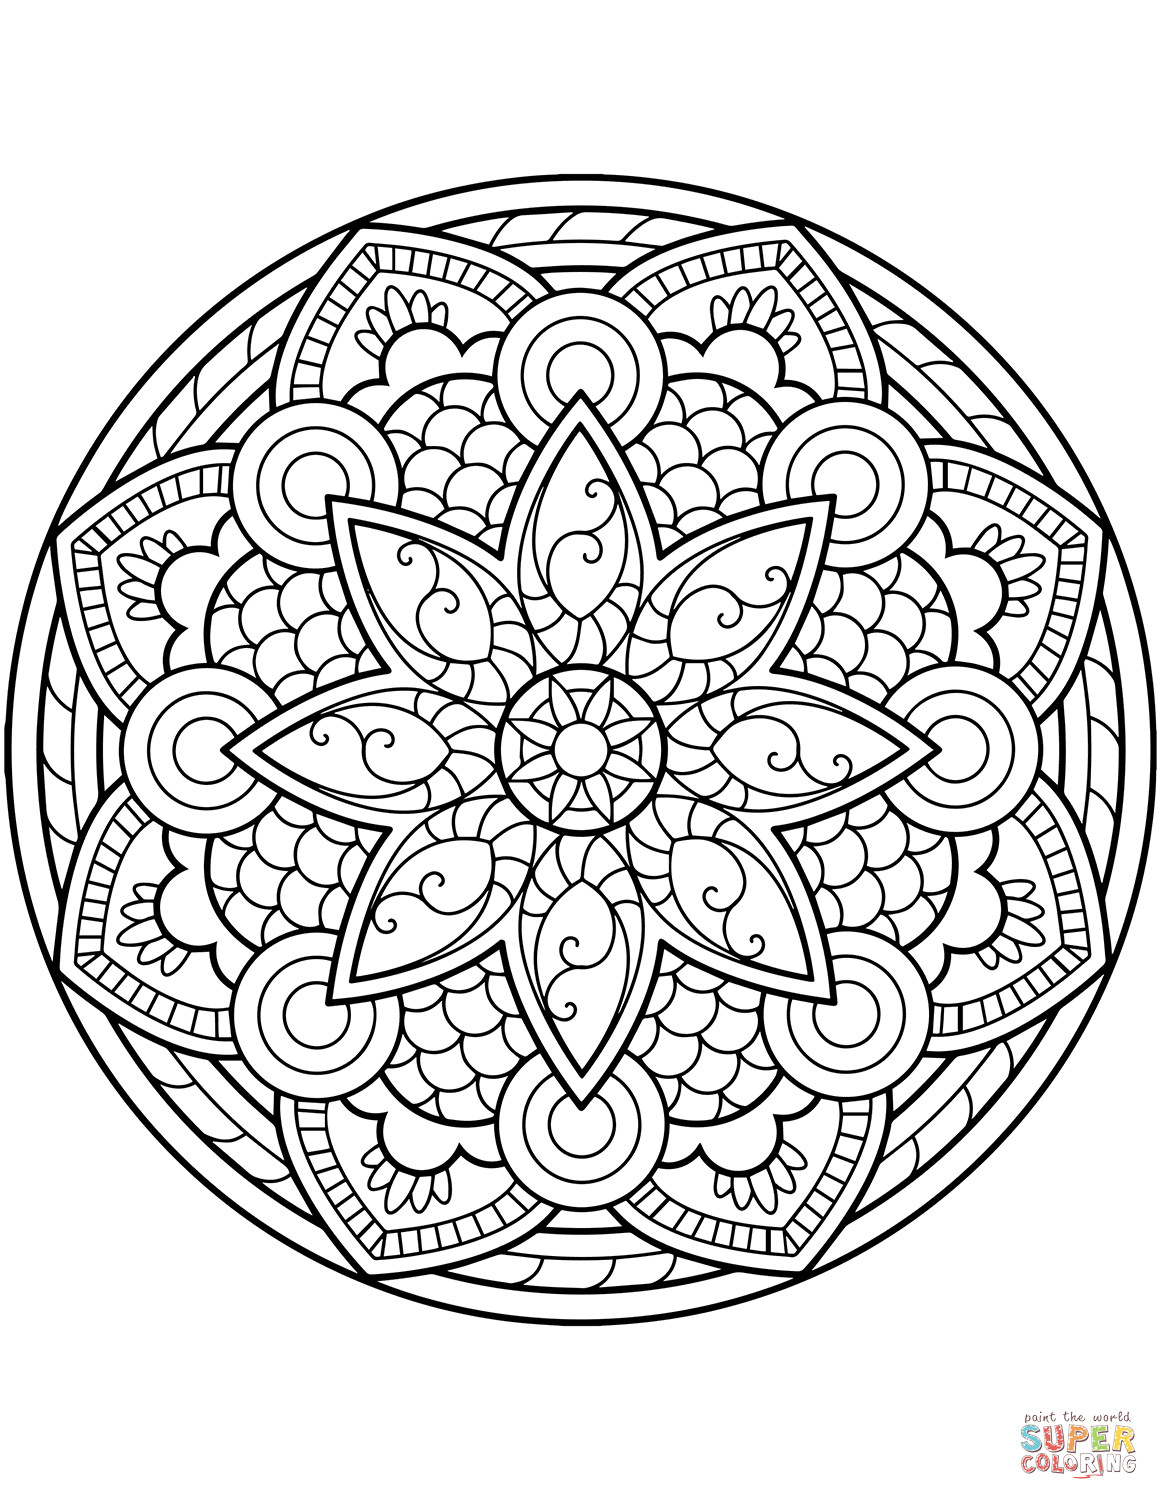 Best ideas about Free Mandala Coloring Pages For Adults . Save or Pin Flower Mandala coloring page Now.